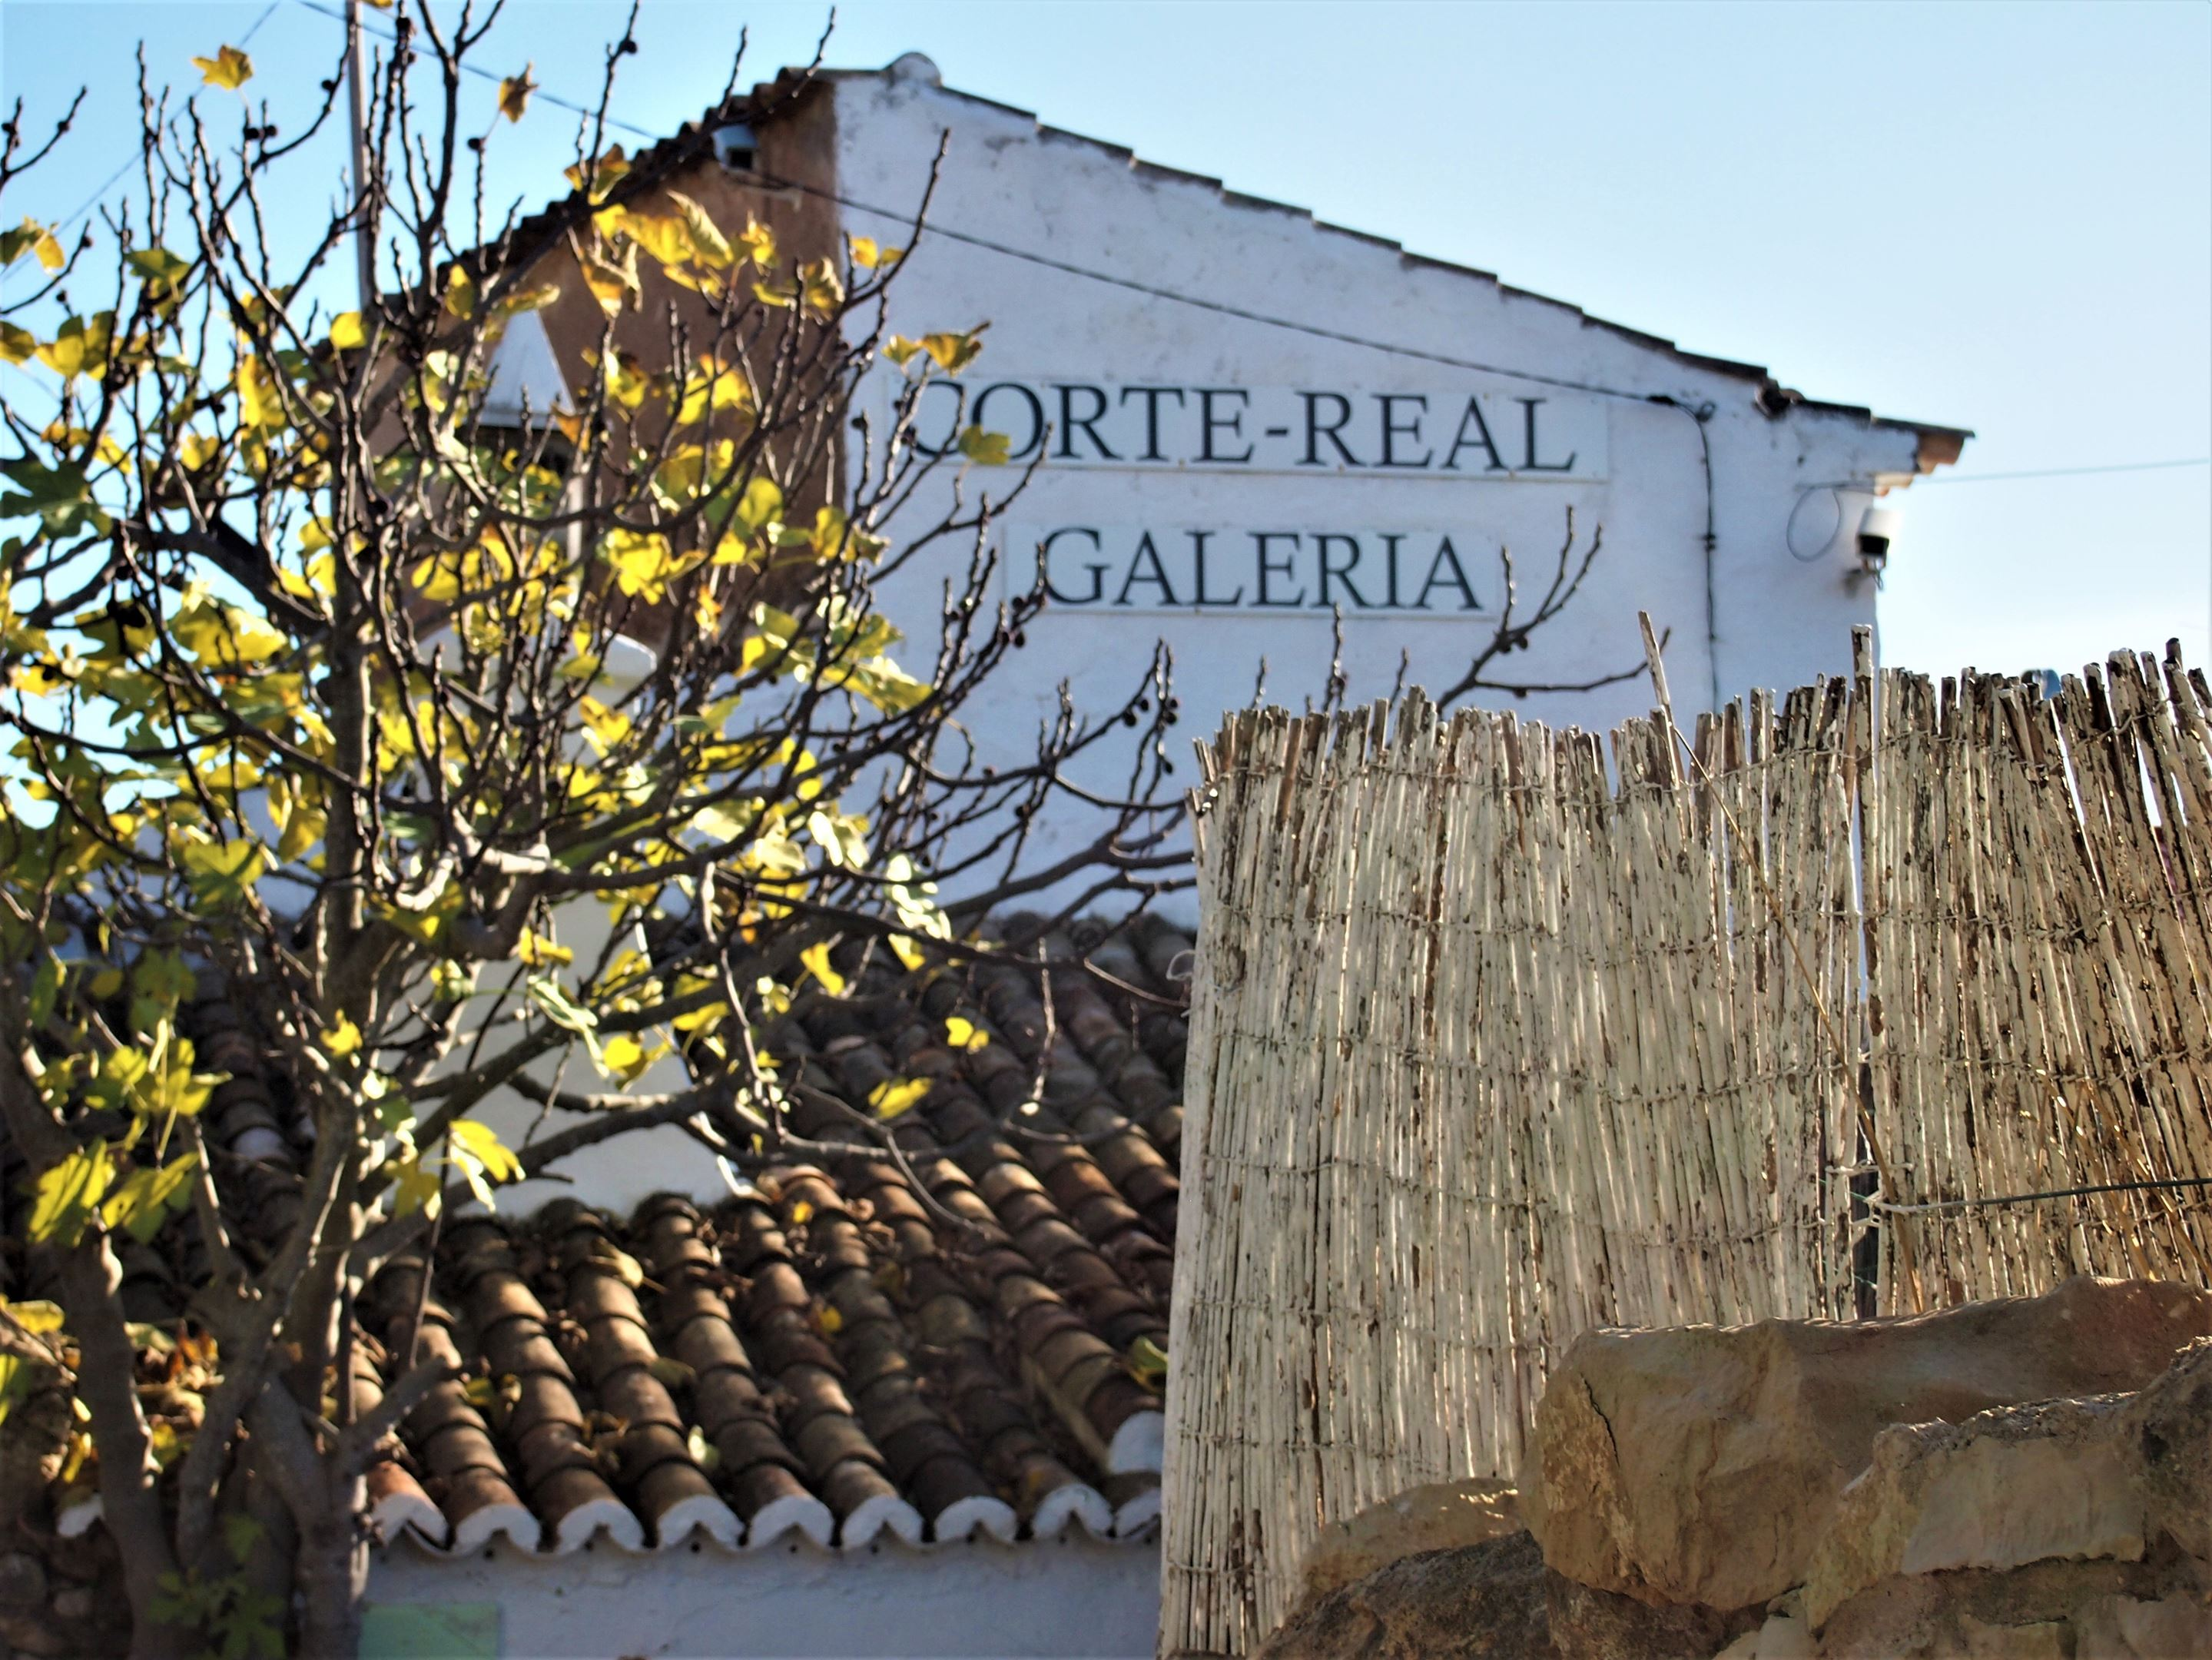 Côrte-Real Art Gallery, Paderne, Algarve